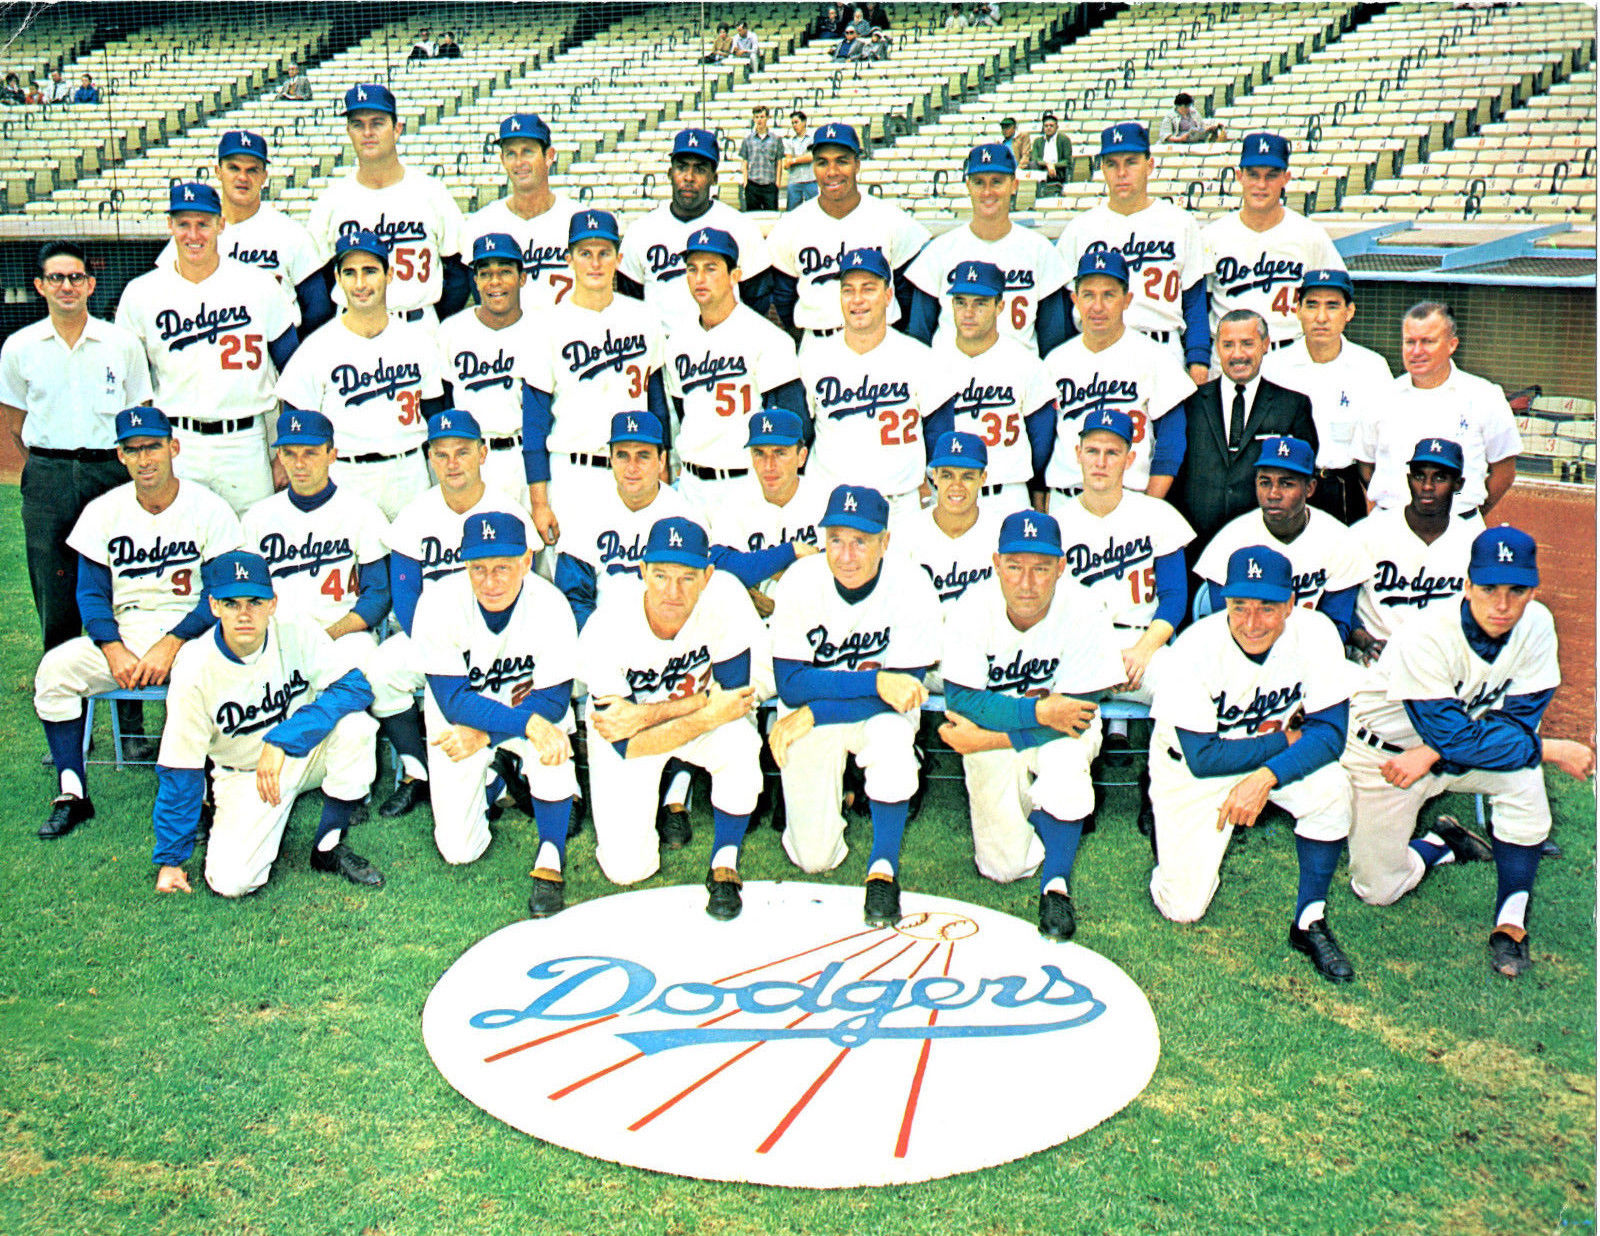 1963 Los Angeles Dodgers Team 8x10 Photo Koufax Wills California Baseball Mlb Dodgers Los Angeles Dodgers Dodgers Baseball